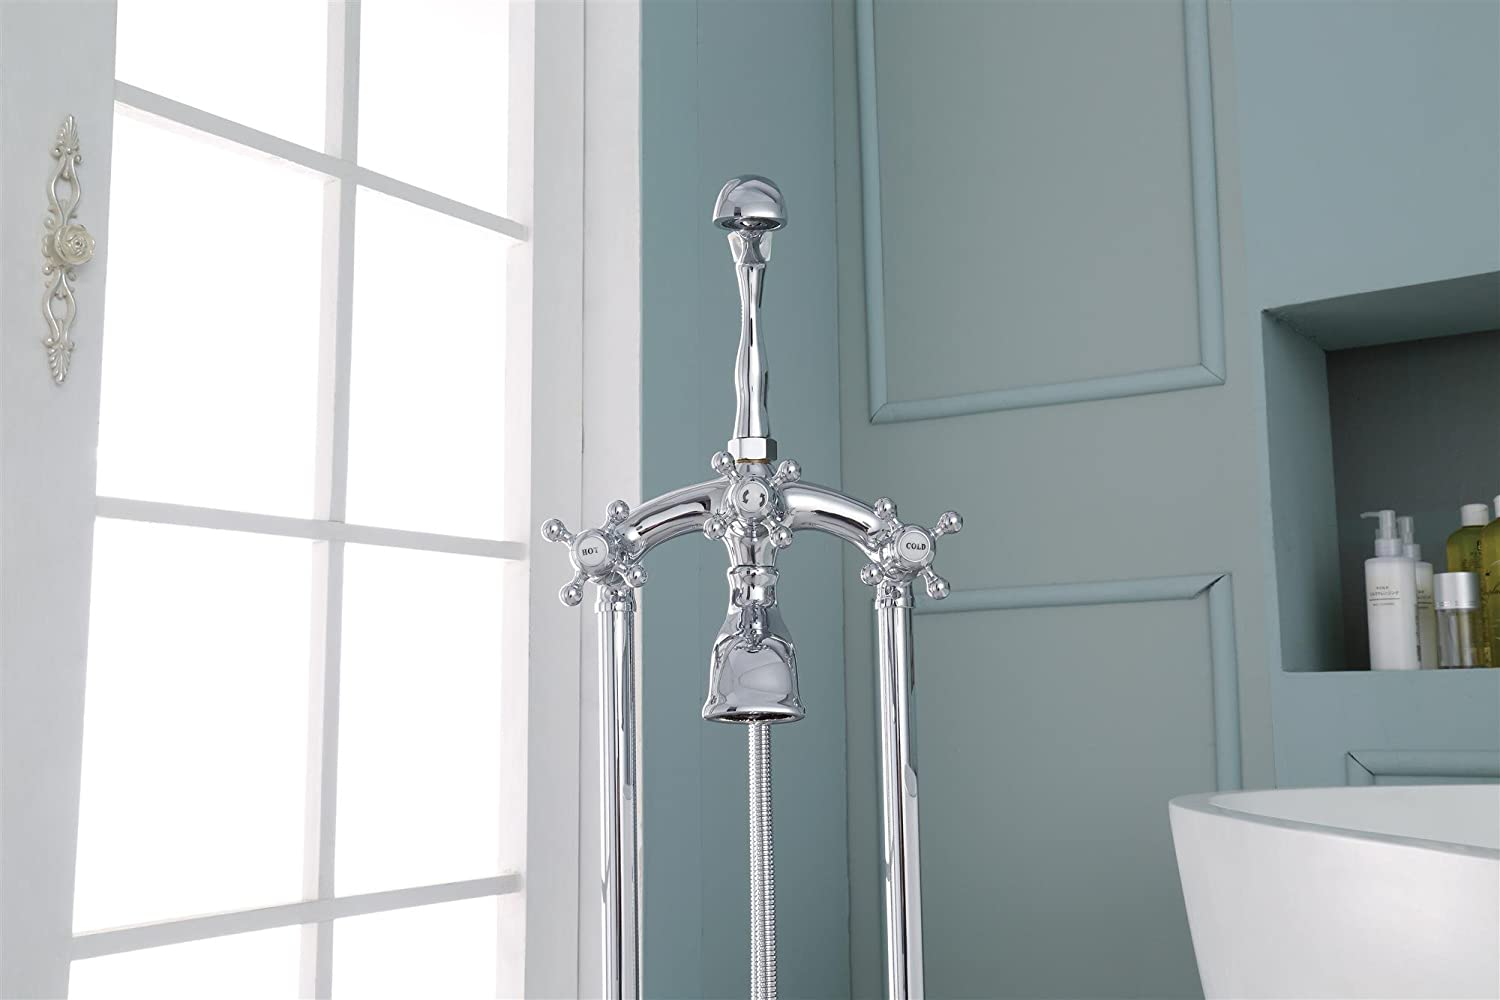 Ariel 3-Handle Freestanding Claw Foot Tub Faucet With Hand Shower In ...